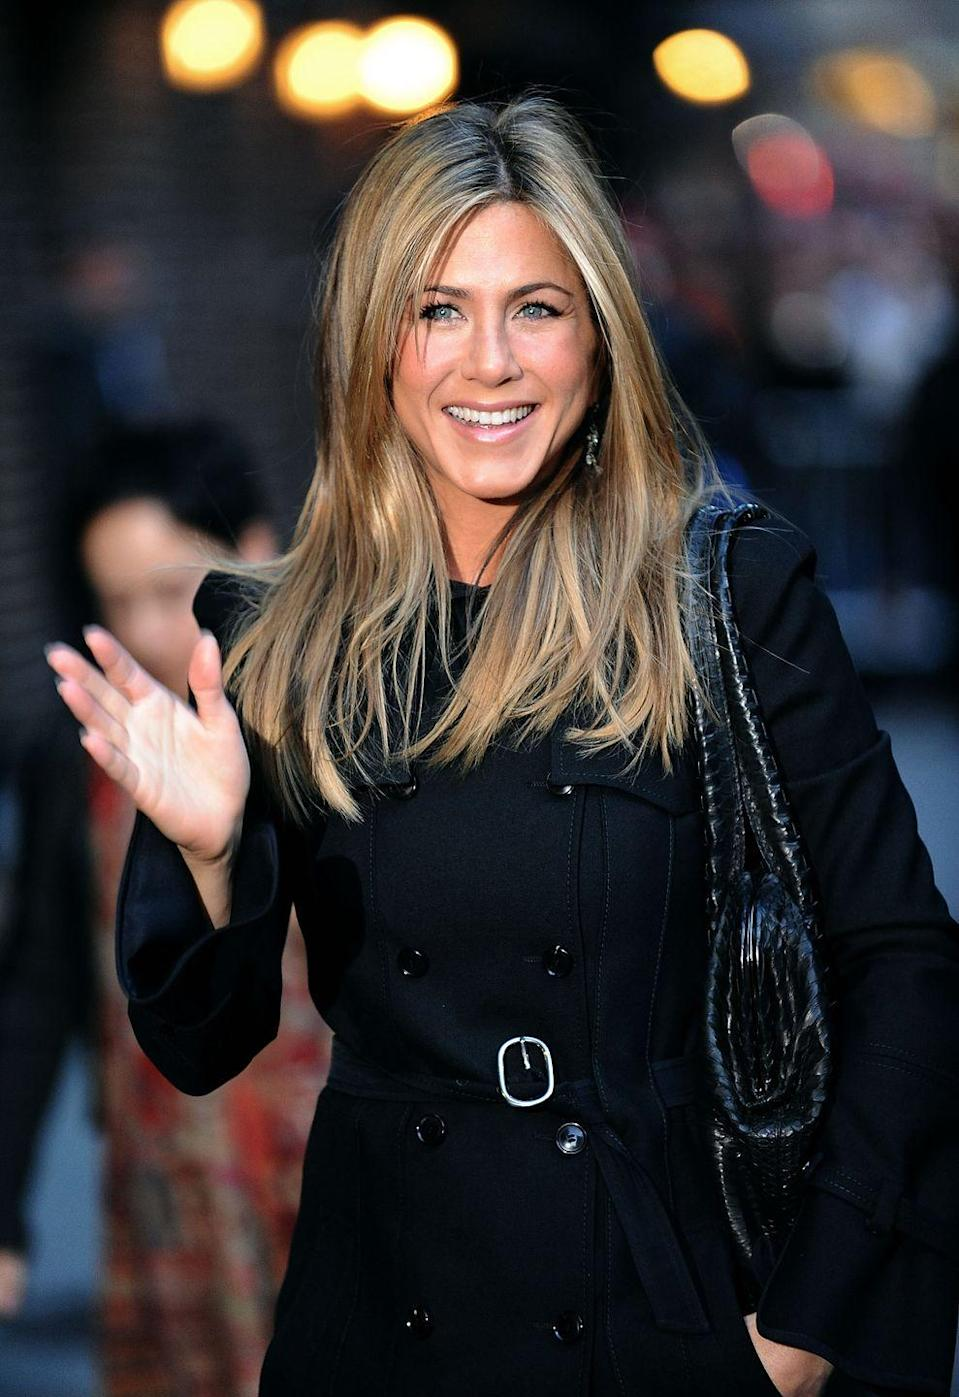 """<p>Aniston talks Pitt and Jolie again, this time with <em><a href=""""https://www.vogue.com/article/jennifer-aniston-prime-time"""" rel=""""nofollow noopener"""" target=""""_blank"""" data-ylk=""""slk:Vogue"""" class=""""link rapid-noclick-resp"""">Vogue</a></em>. She explains that she was hurt by stories Brangelina shared with the press about falling for each other during their marriage. </p><p>""""There was stuff printed there that was definitely from a time when I was unaware that it was happening,"""" she says. """"I felt those details were a little inappropriate to discuss. That stuff about how she couldn't wait to get to work every day? That was really uncool.""""</p>"""